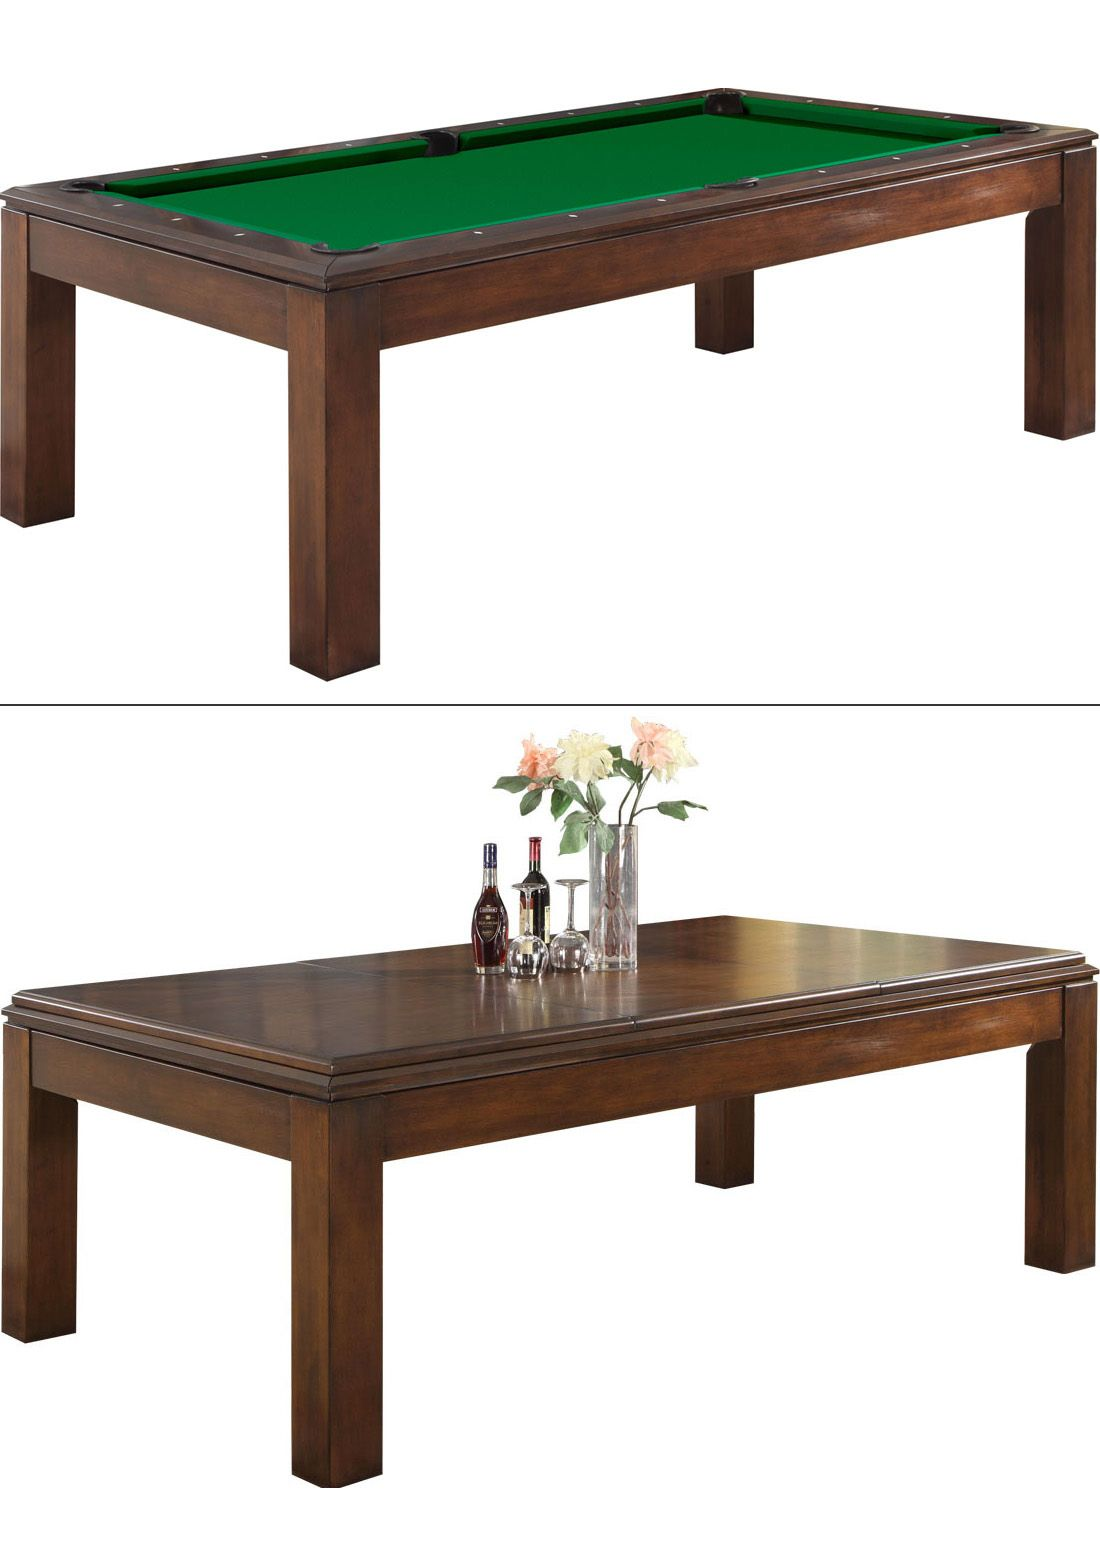 Dining Room Table Turns Into A Full Size Pool Table Great Way To